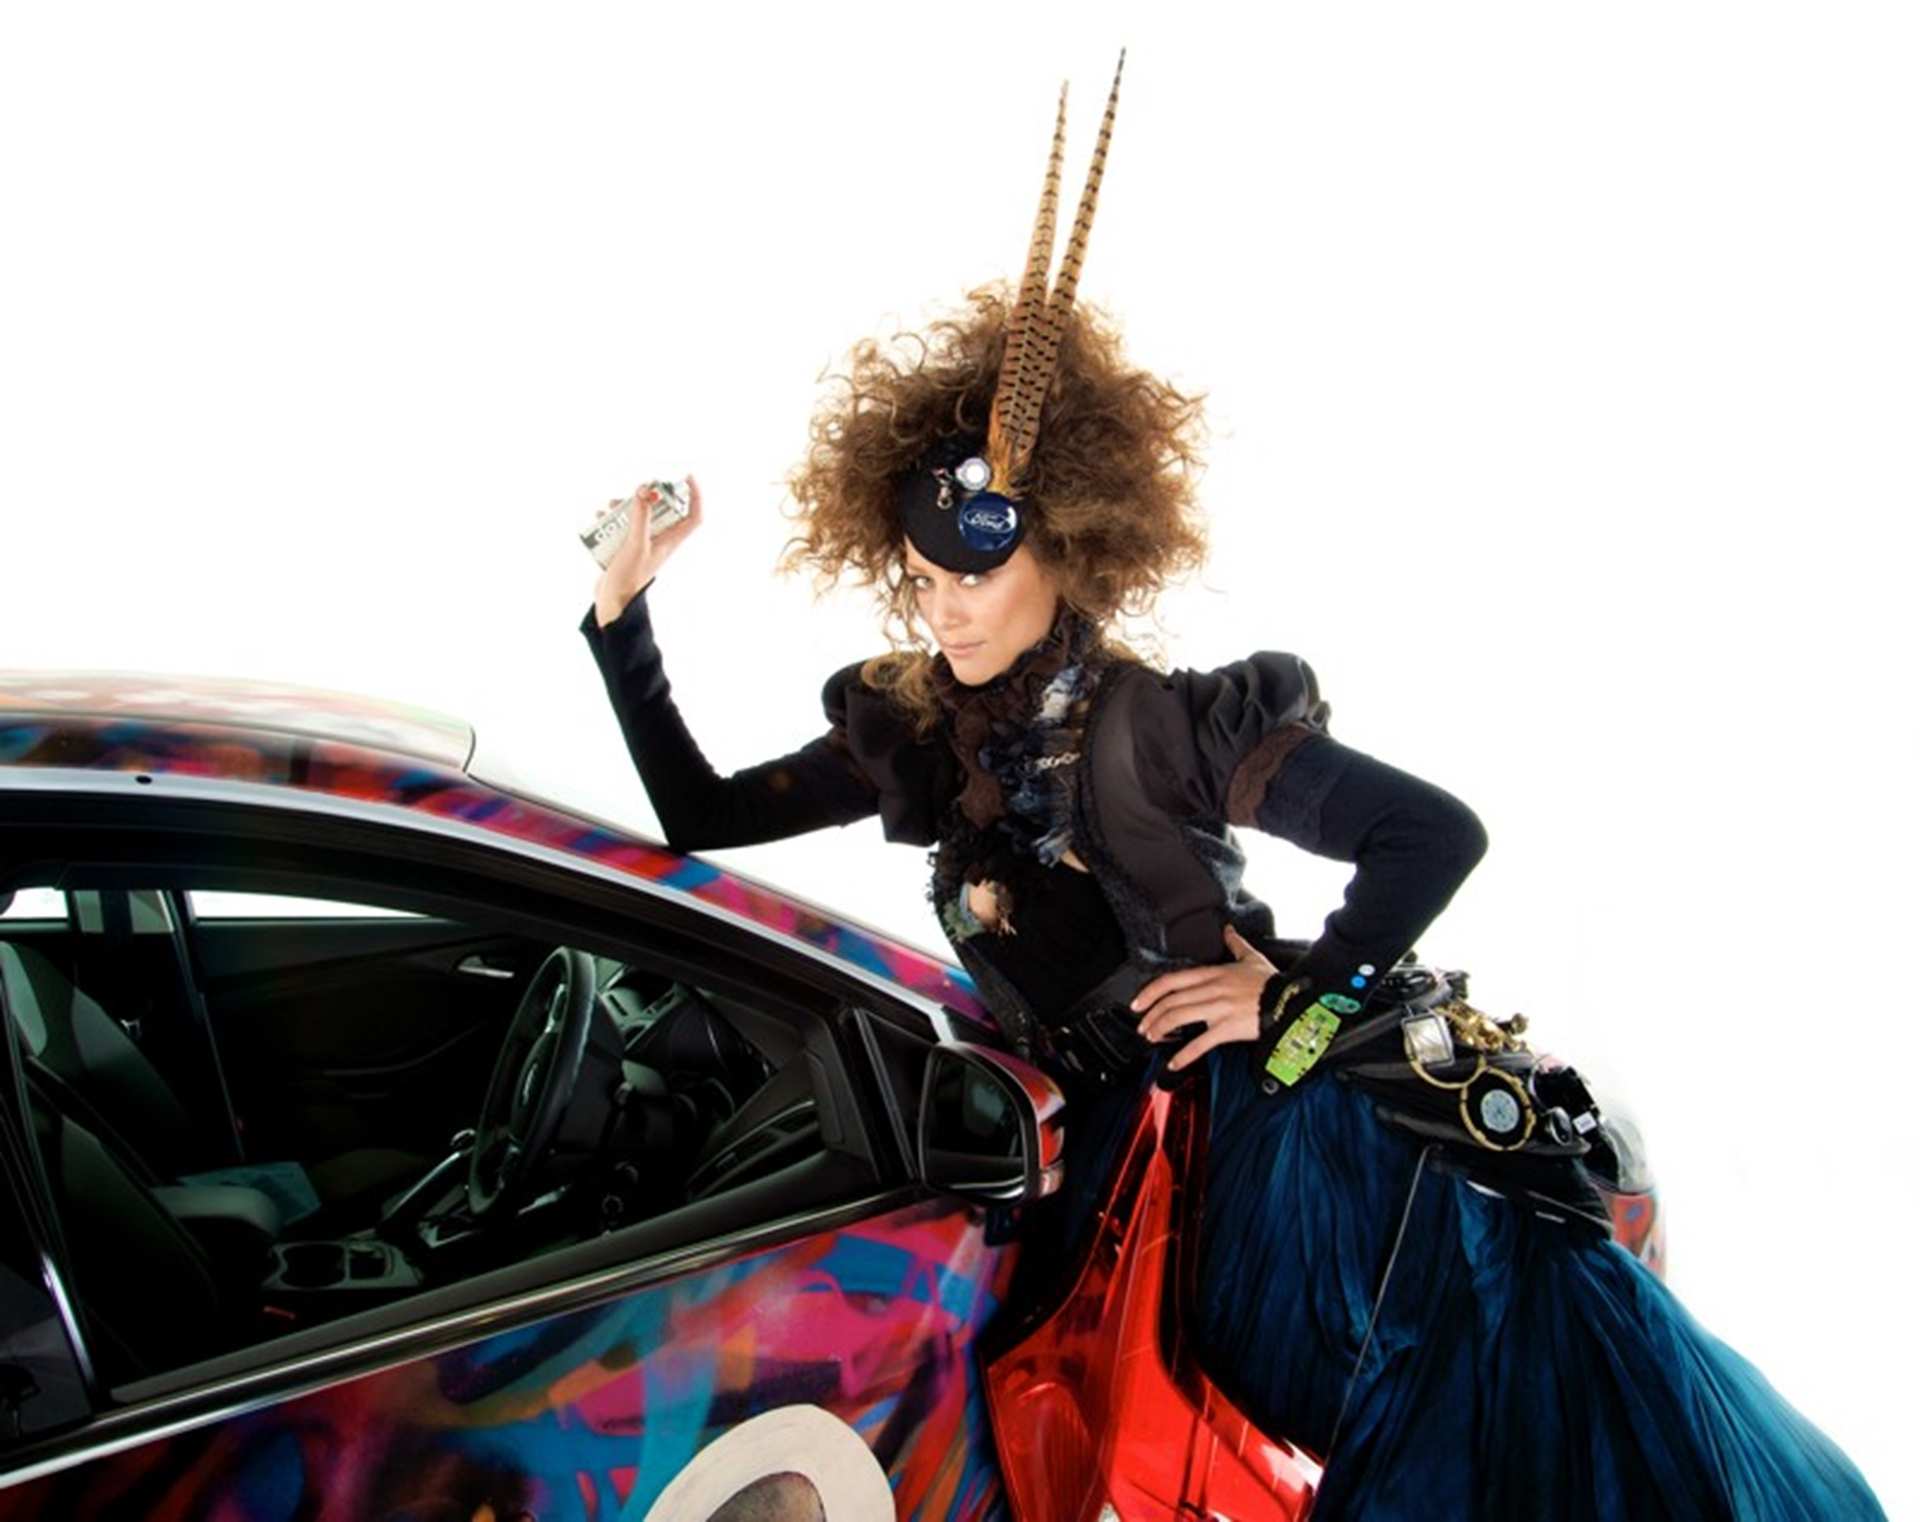 Ford Model in Ford Focus parts dress